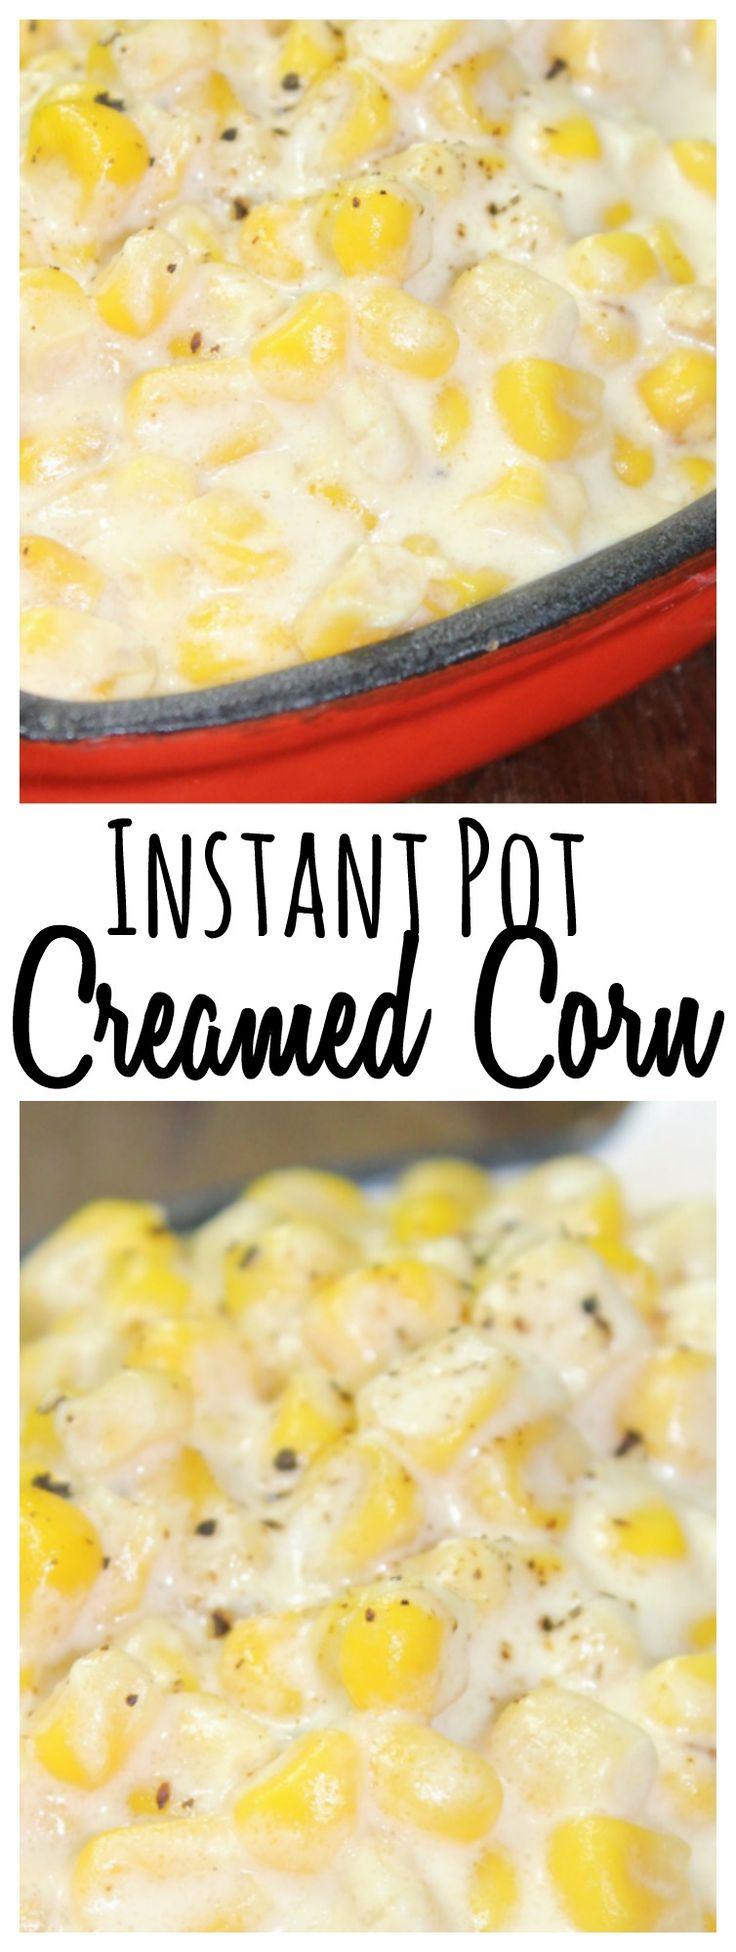 Combine cream cheese, and butter in a rich, and buttery creamed corn that only takes a few minutes to cook up in the Instant Pot!